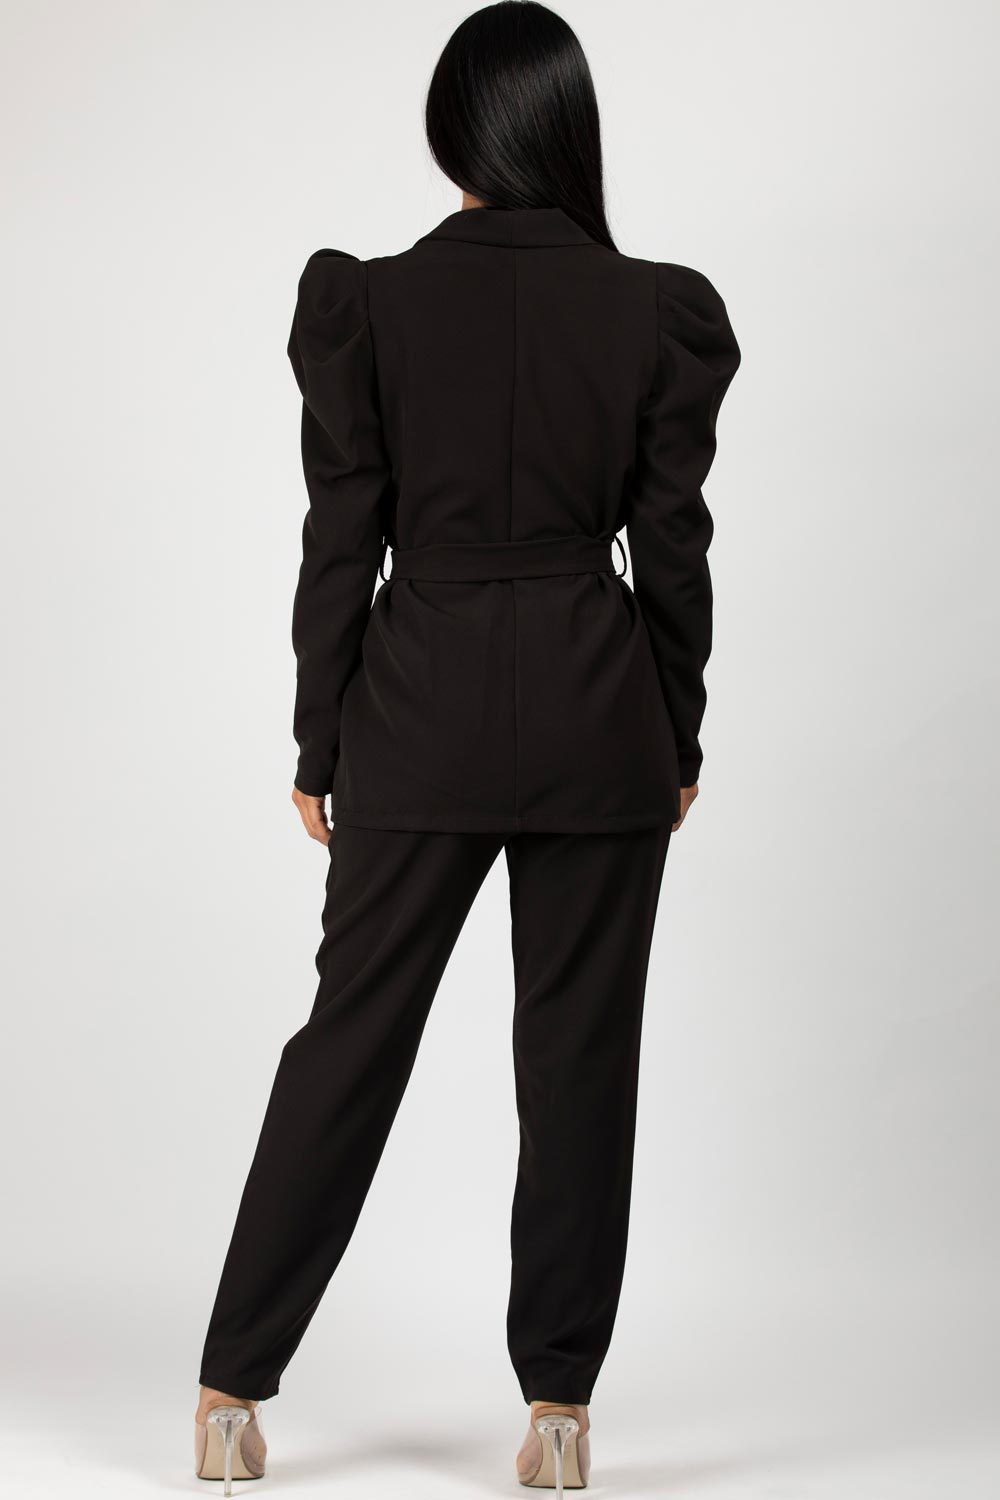 puff sleeve blazer suit black